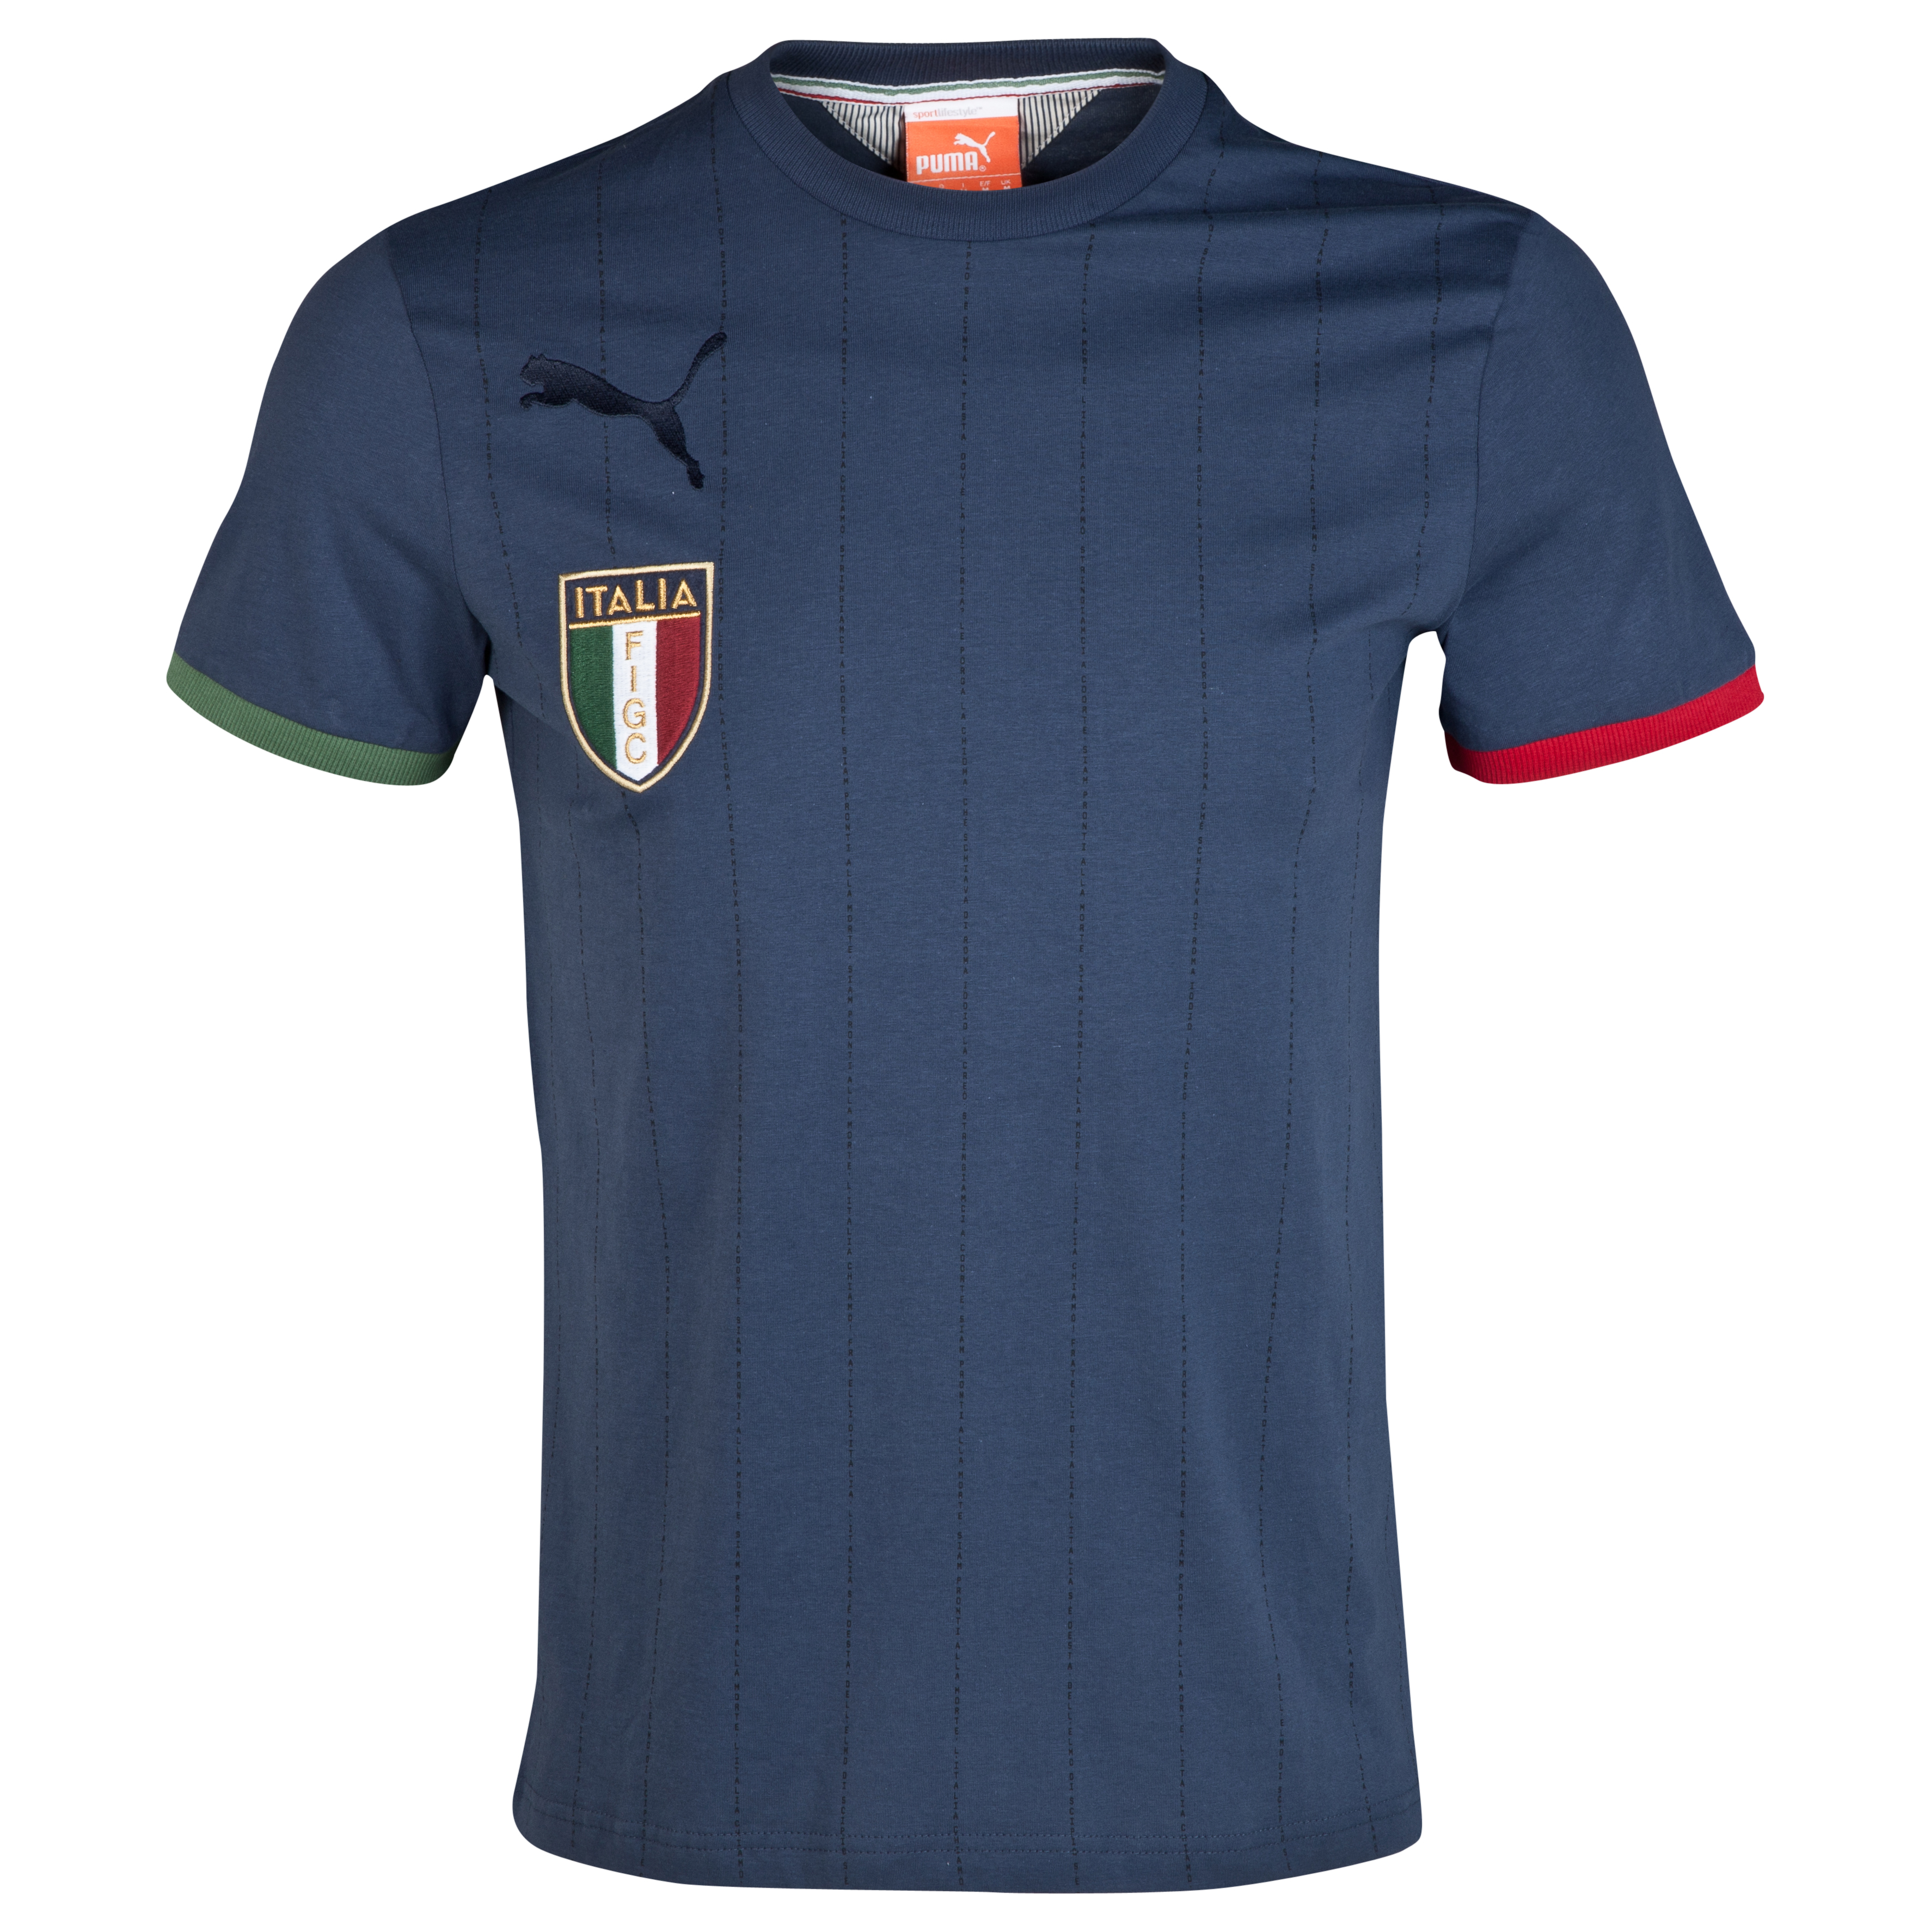 Italy T7 Badge T-Shirt - Indigo